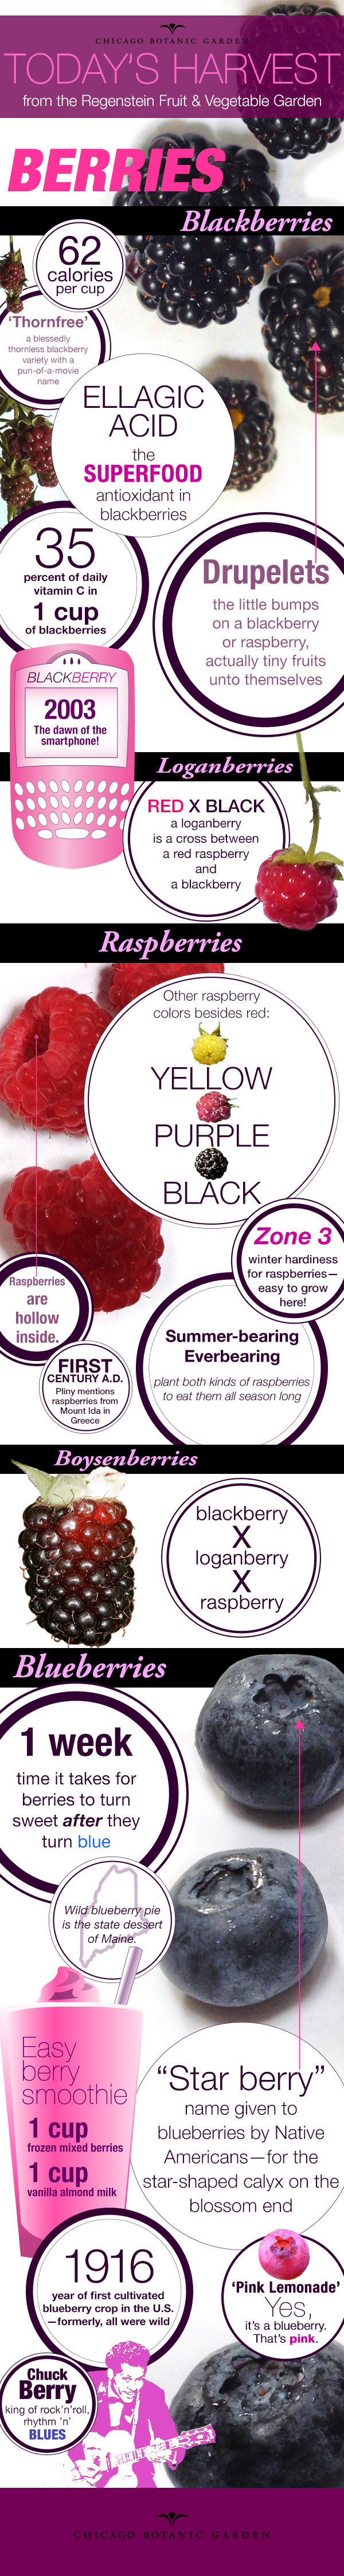 Infographic on berries